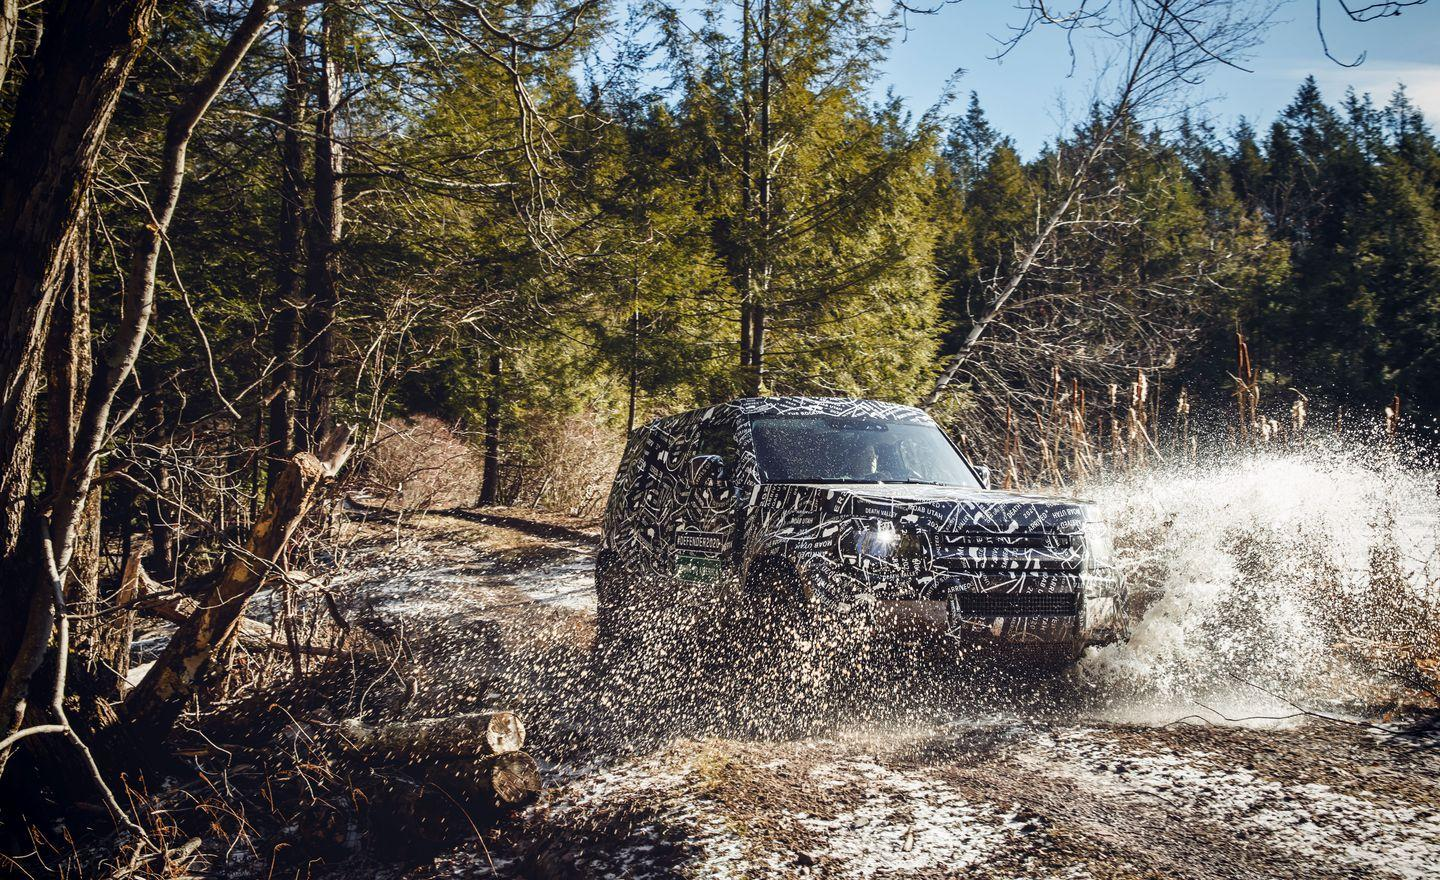 <p>Even bigger news: Land Rover also confirmed that the new Defender will be sold in the United States, making it the first Defender to be officially sold here since 1997.</p>